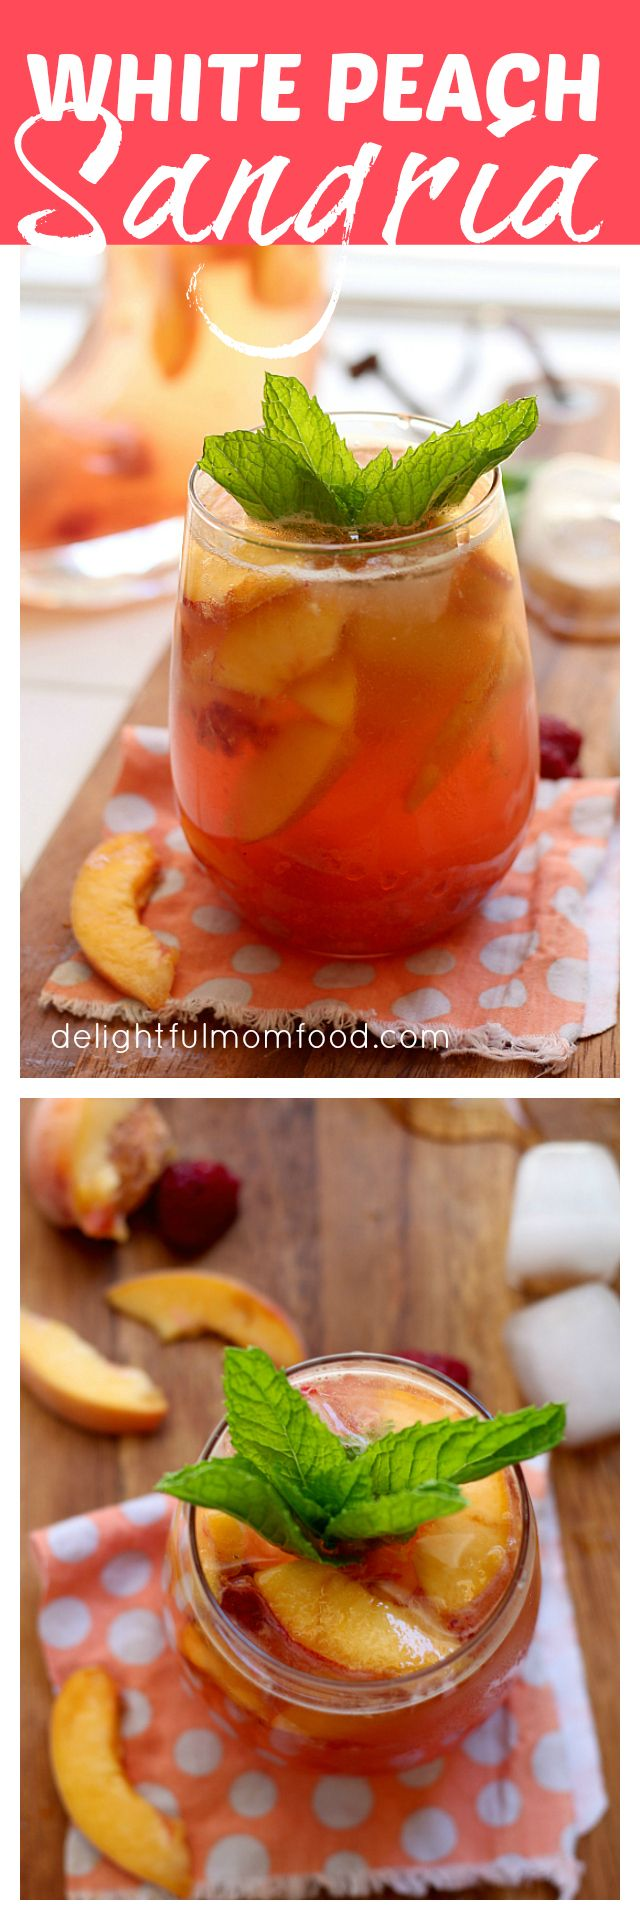 All Natural White Peach Sangria With Mint White peach sangria sweetened naturally with fresh berries, peaches and honey. No refined sugars or syrups for this perfectly sparkling drink! #sangria #white #peach #mint #recipe #drinks | Delightful Mom Food